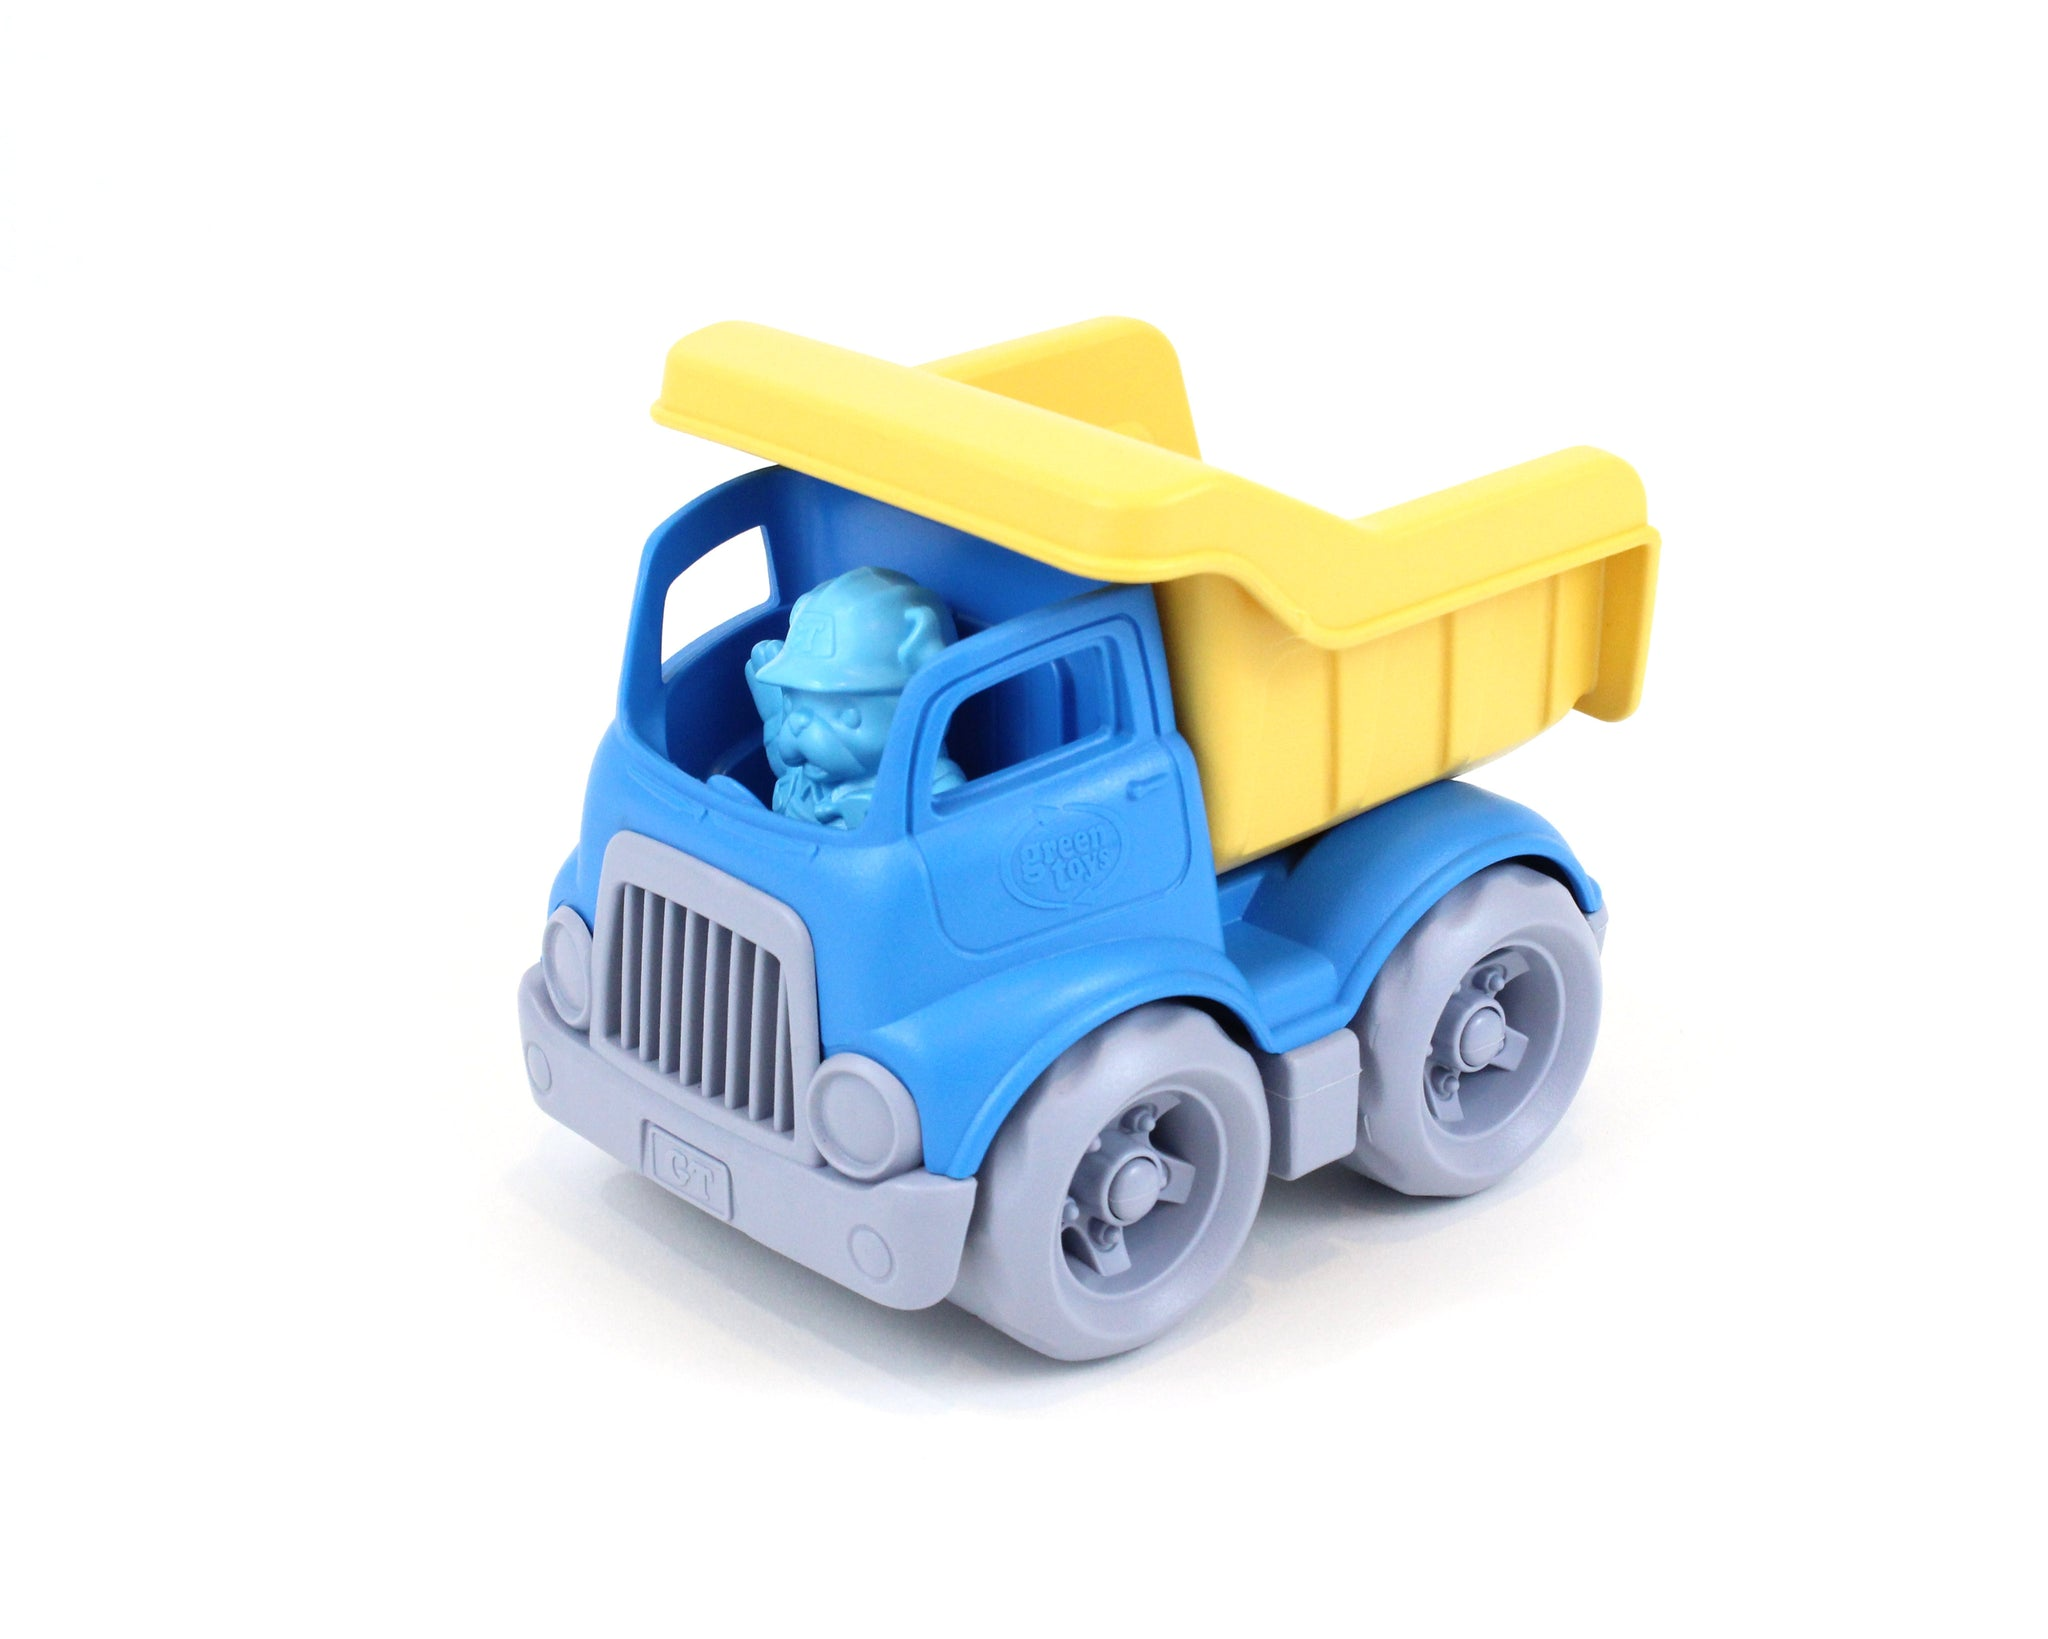 Green Toys Free Shipping! Mixer Construction Toy Truck